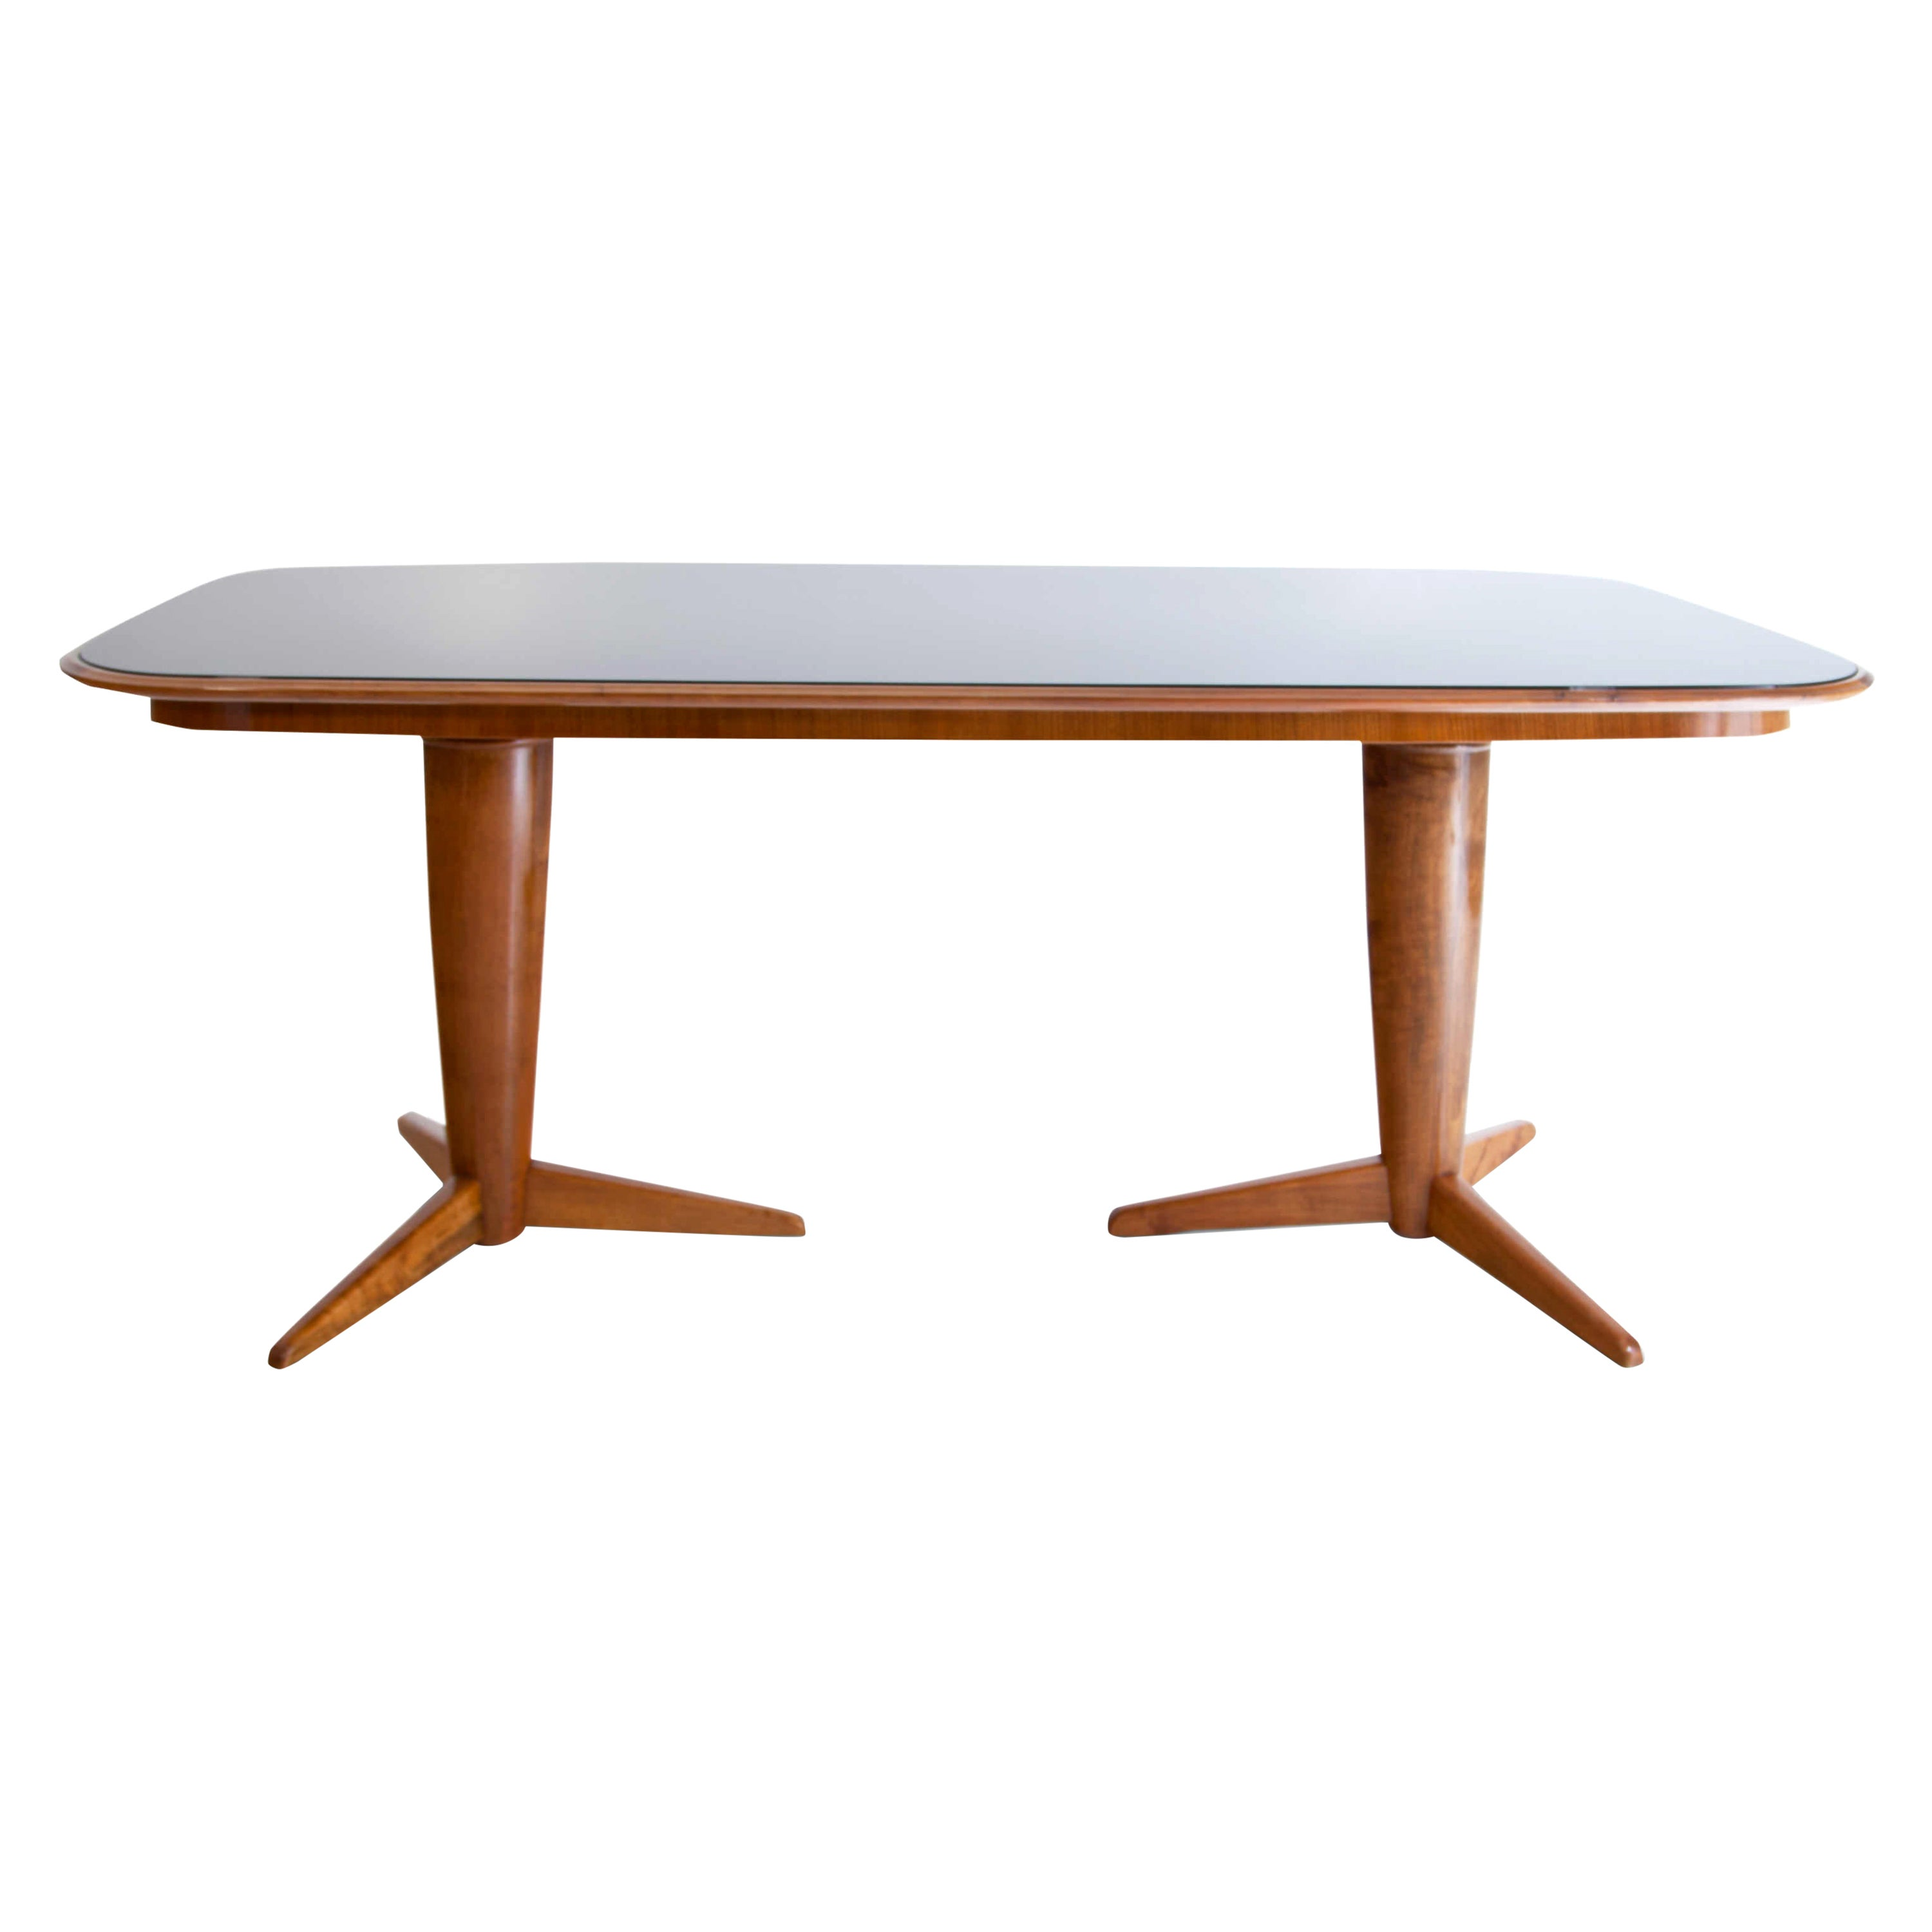 Midcentury Table Attributed to Osvaldo Borsani, Italy, 1950s